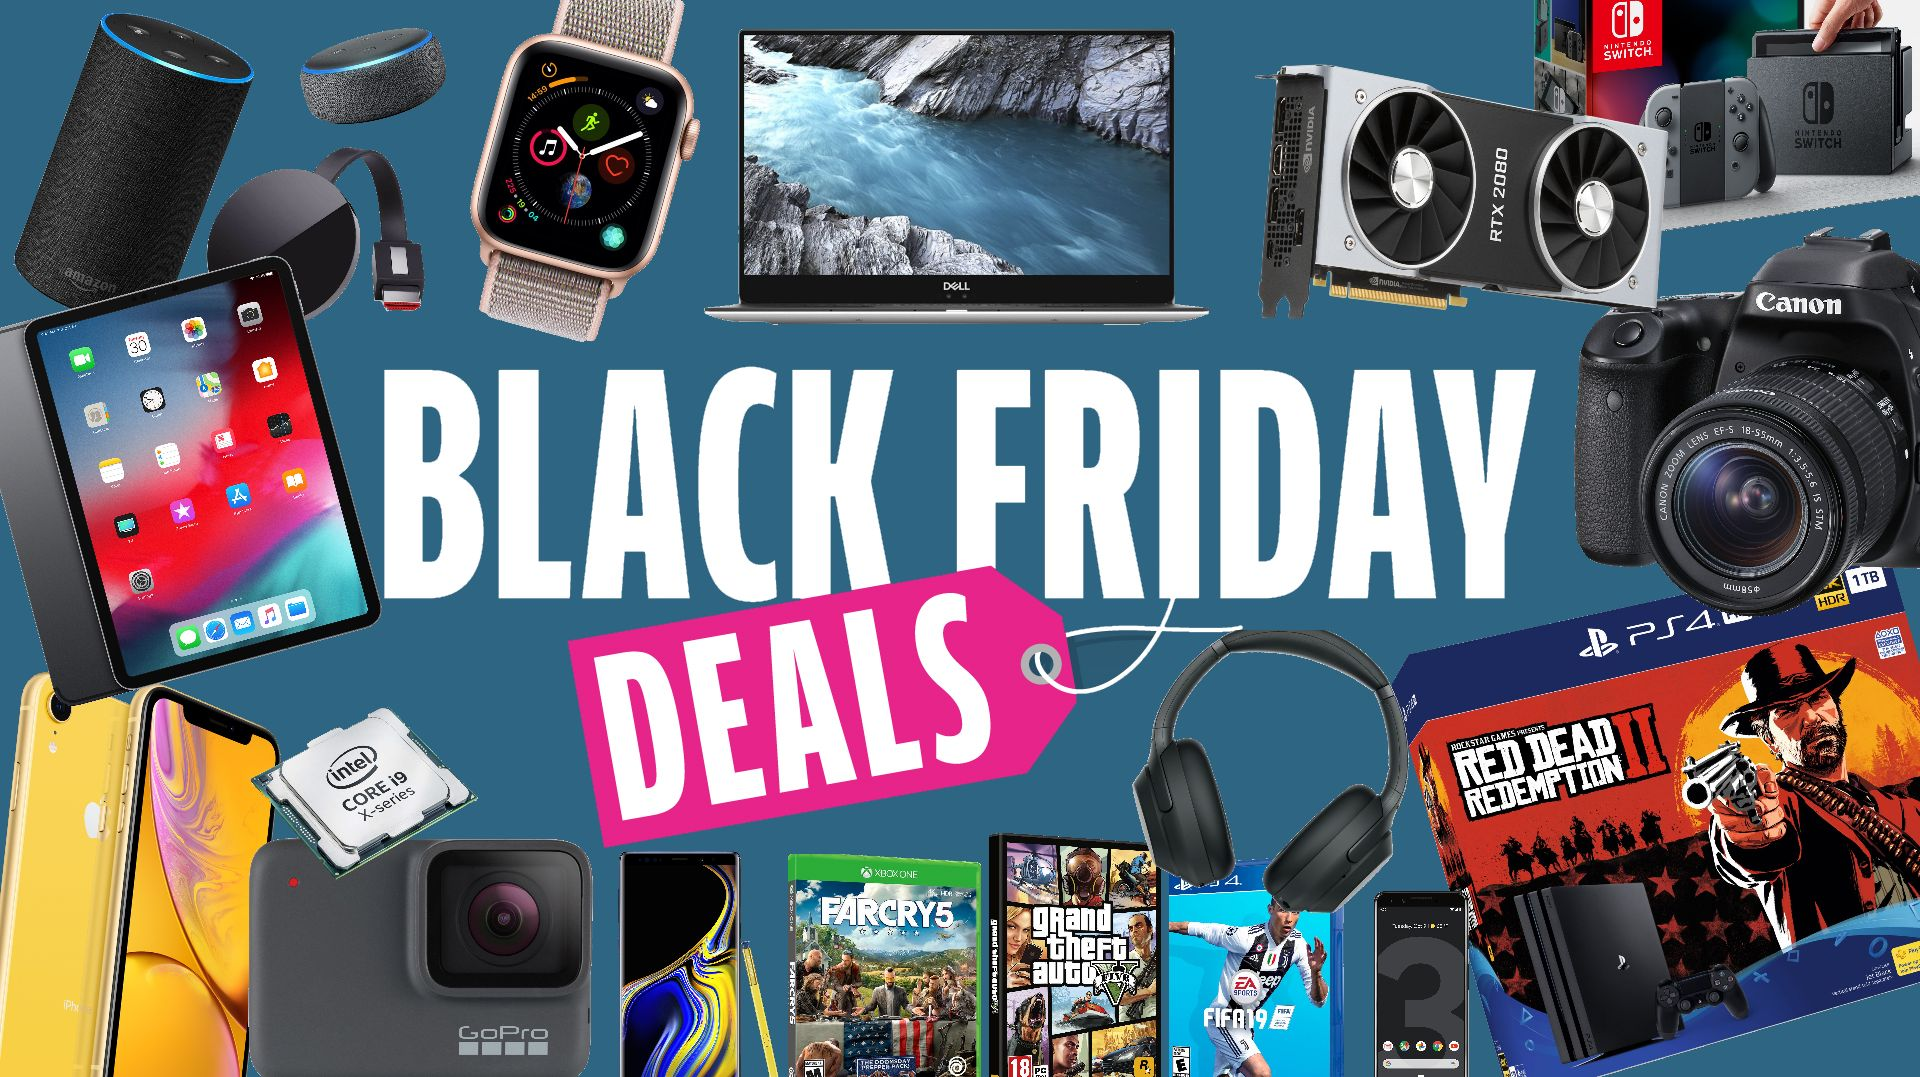 Black Friday 2019 Everything You Need To Know About The Next Big